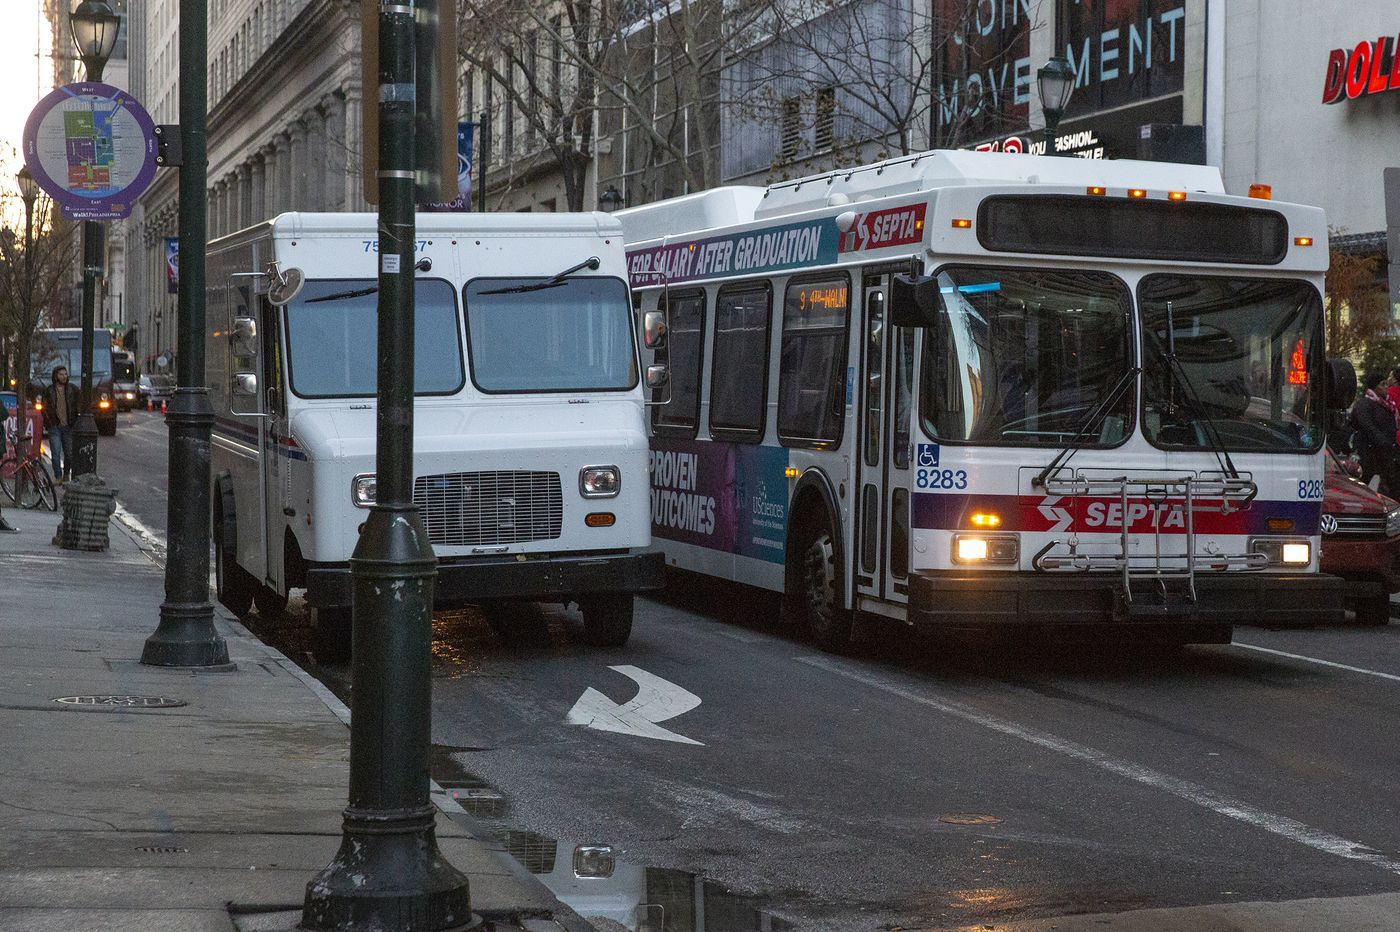 SEPTA's new bus route feeding University City to debut Sunday, spring schedules to take effect